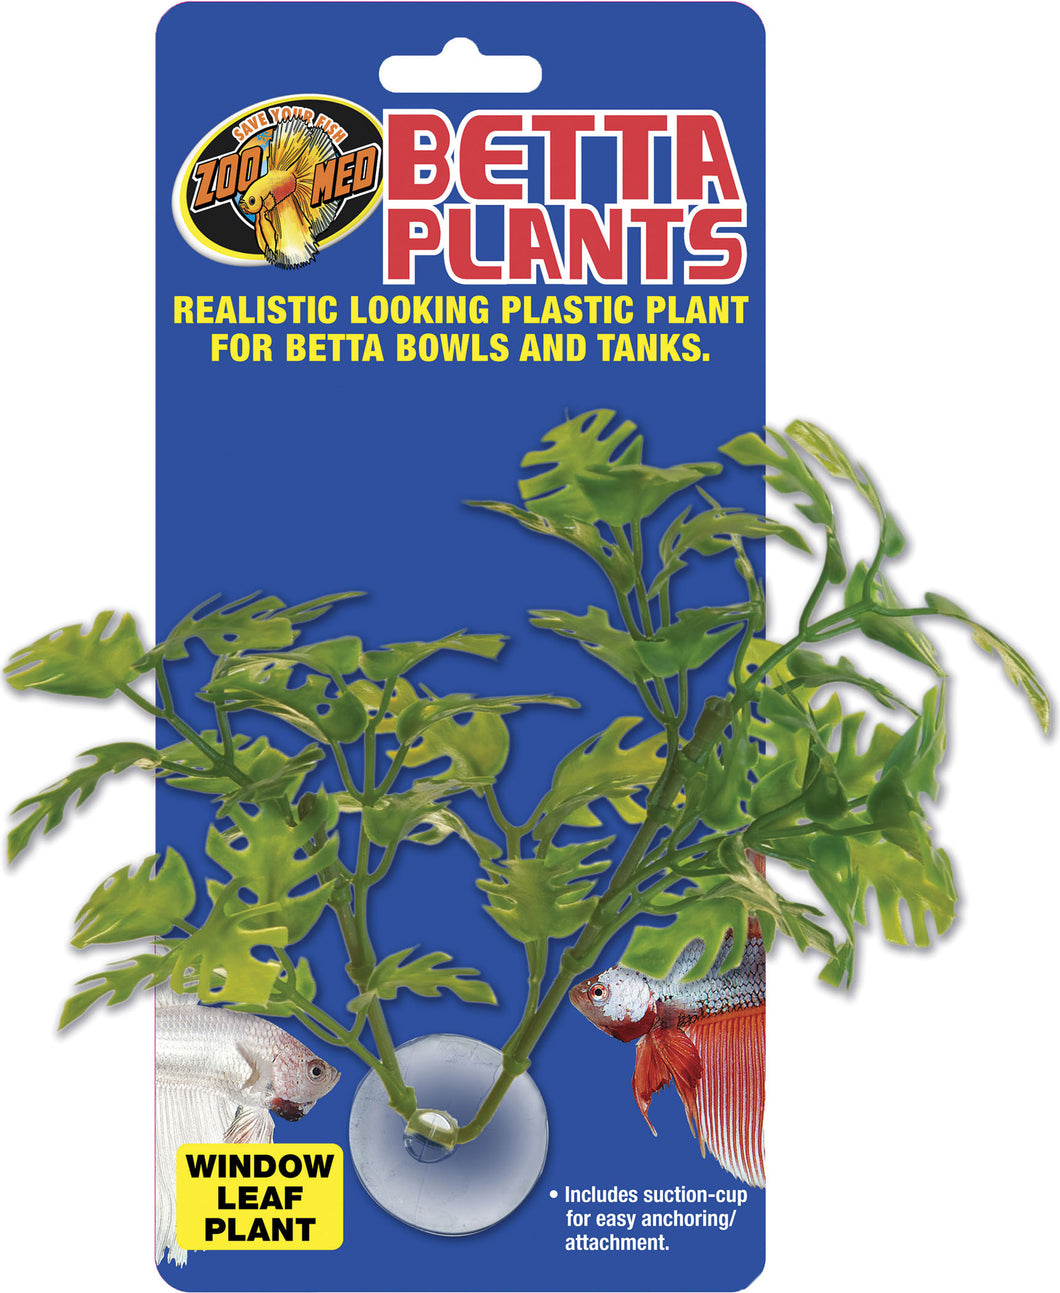 Betta Plastic Plant Window Leaf